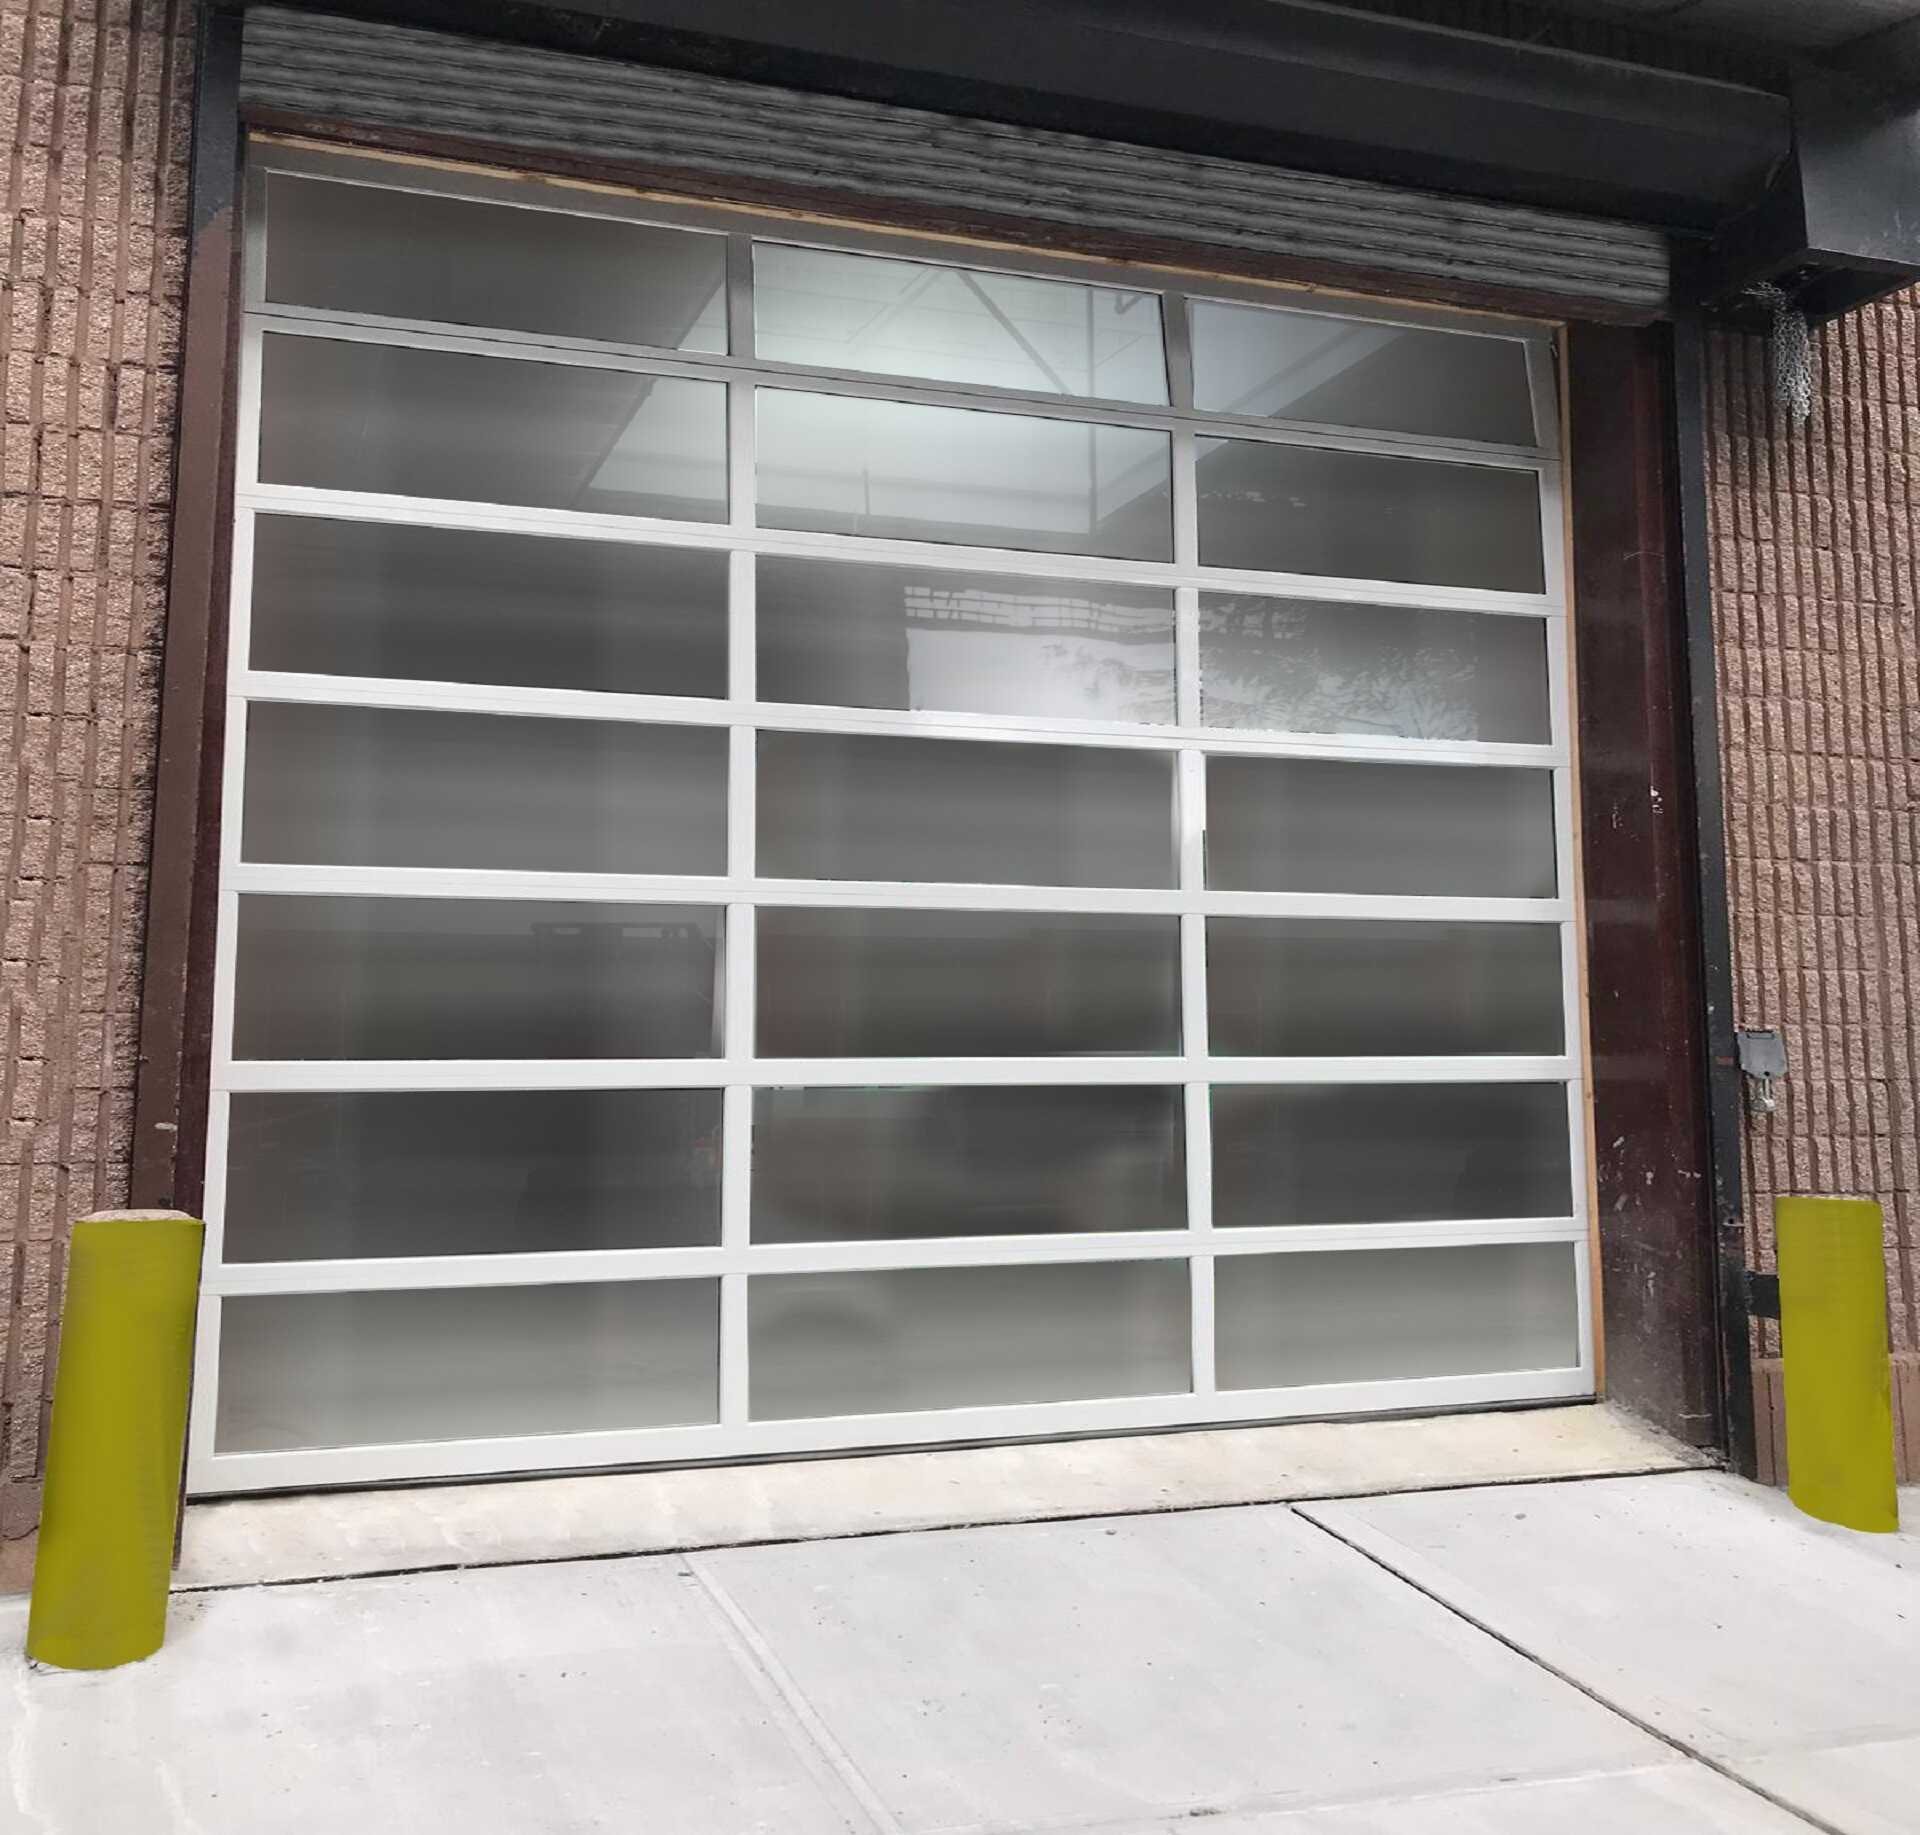 Garage door repiar, garage door, garage door installation, commercial garage door repair, commercial garage door, commercial garage door installation, garage door spring,garage door spring repair,commercial garage door spring, commercial garage door spring repair